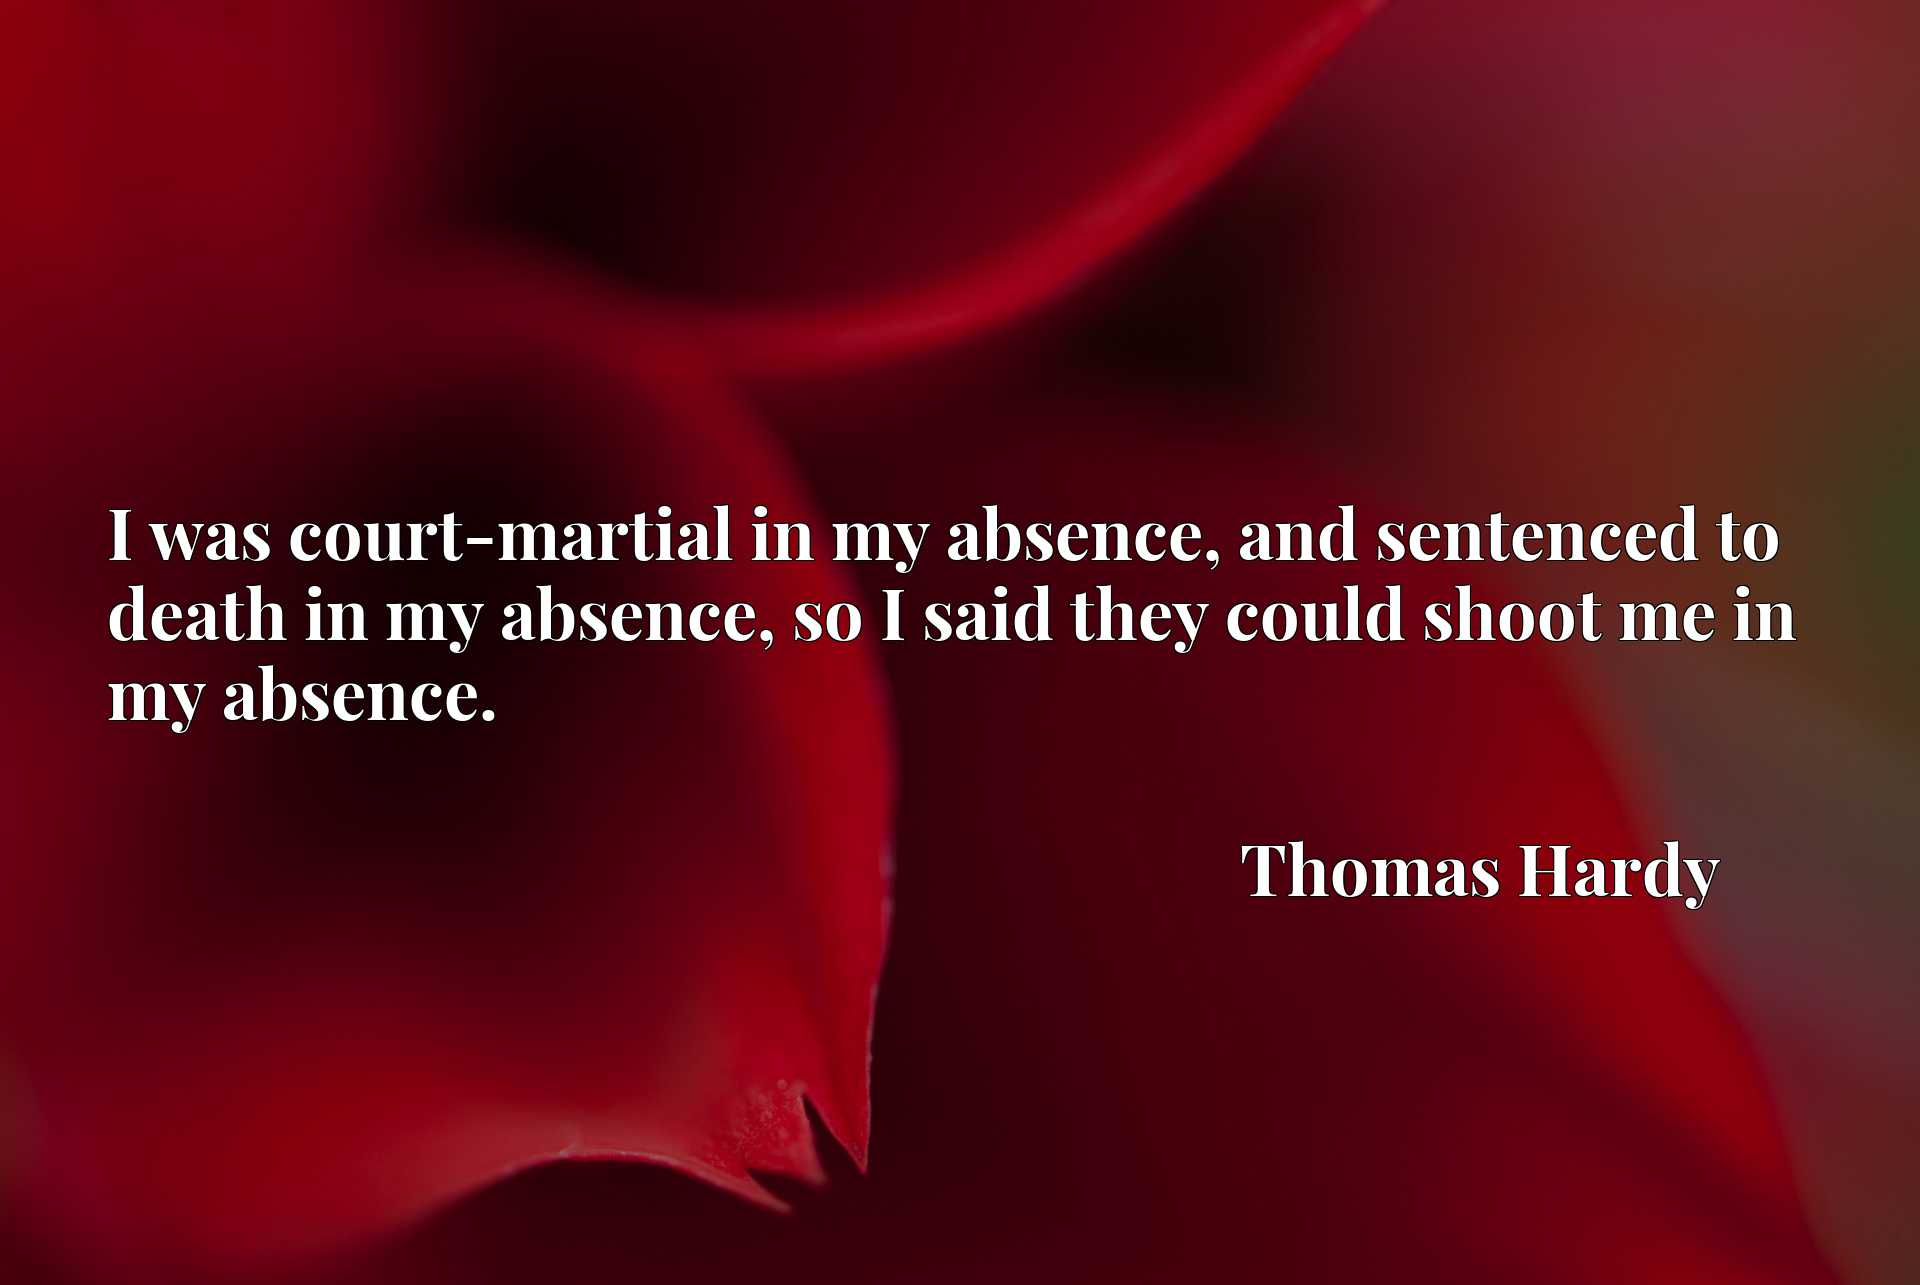 I was court-martial in my absence, and sentenced to death in my absence, so I said they could shoot me in my absence.